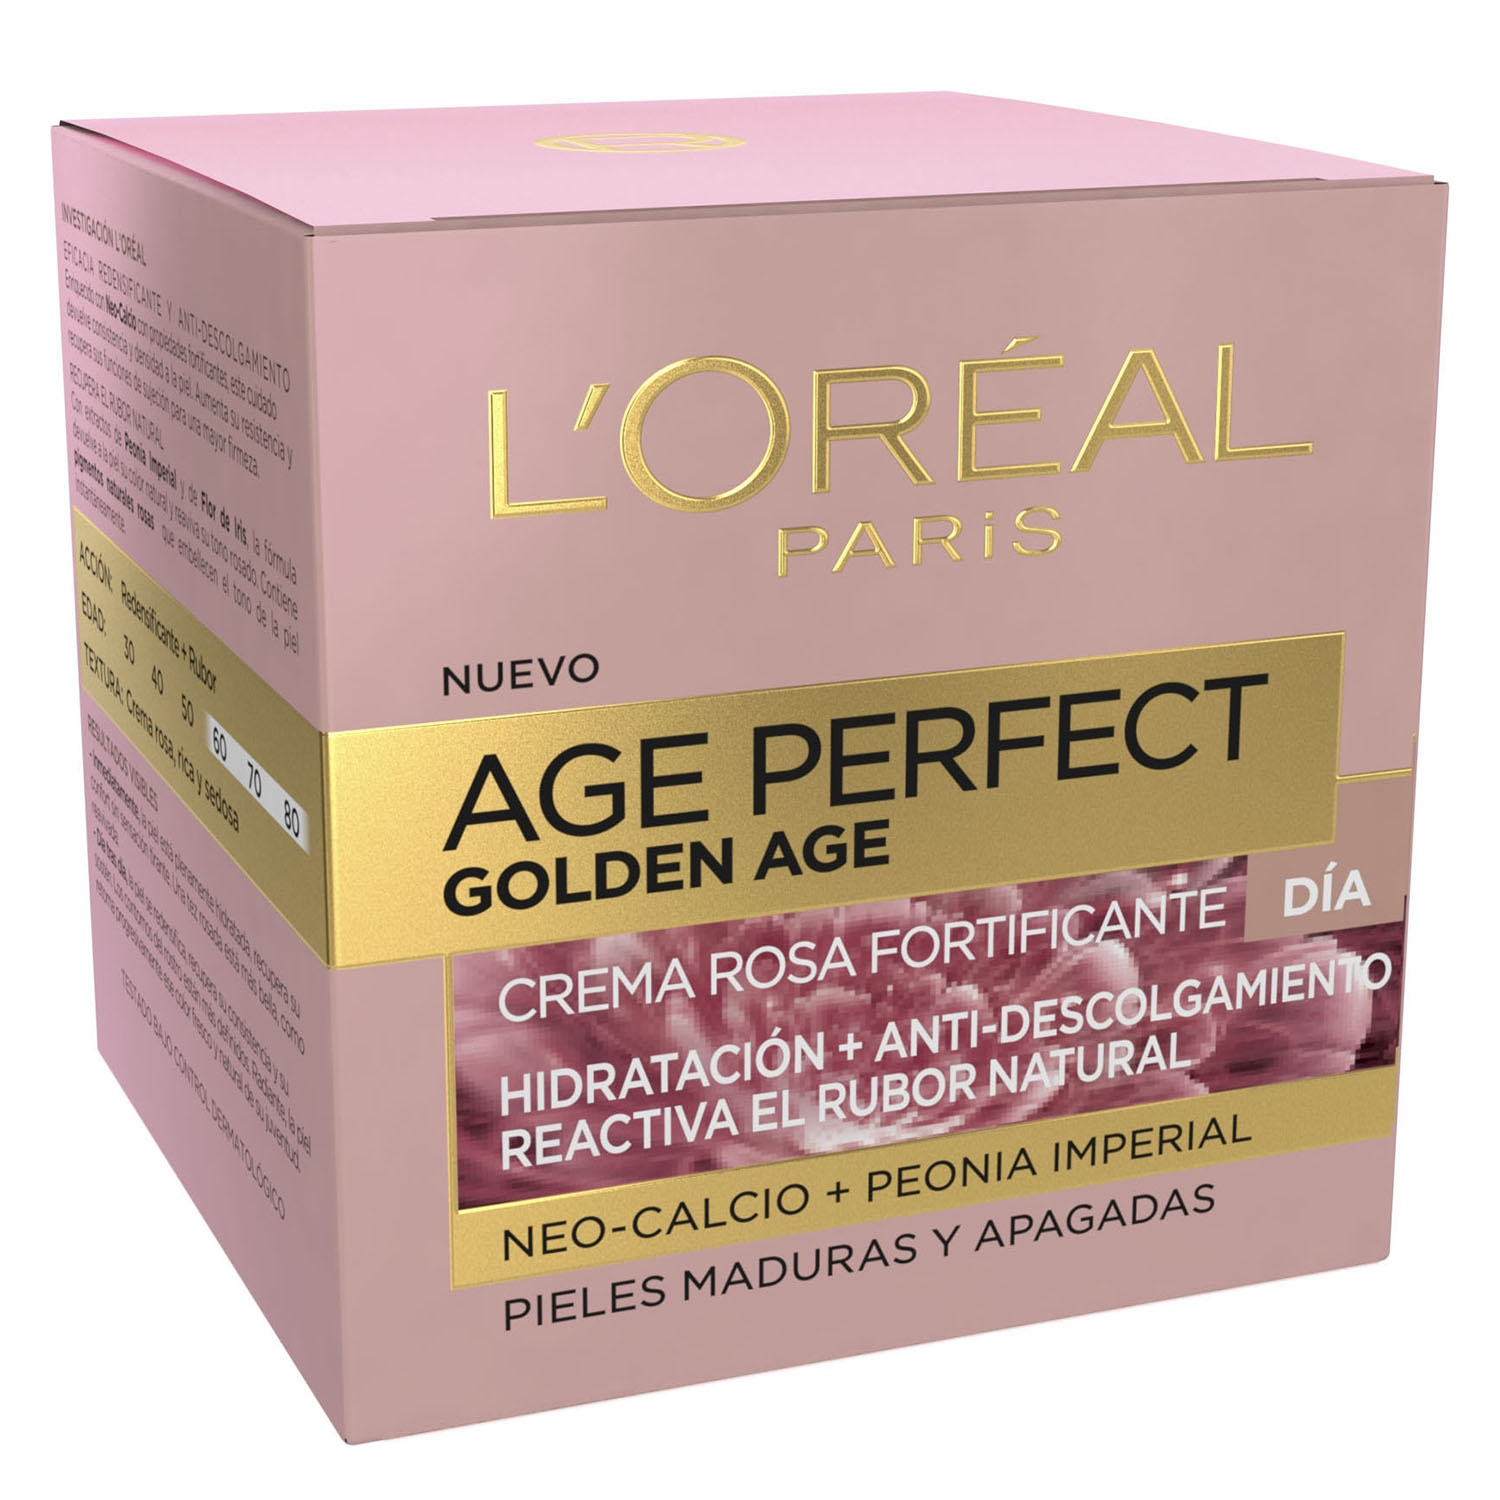 Crema fortificante Age Perfect Golden Age